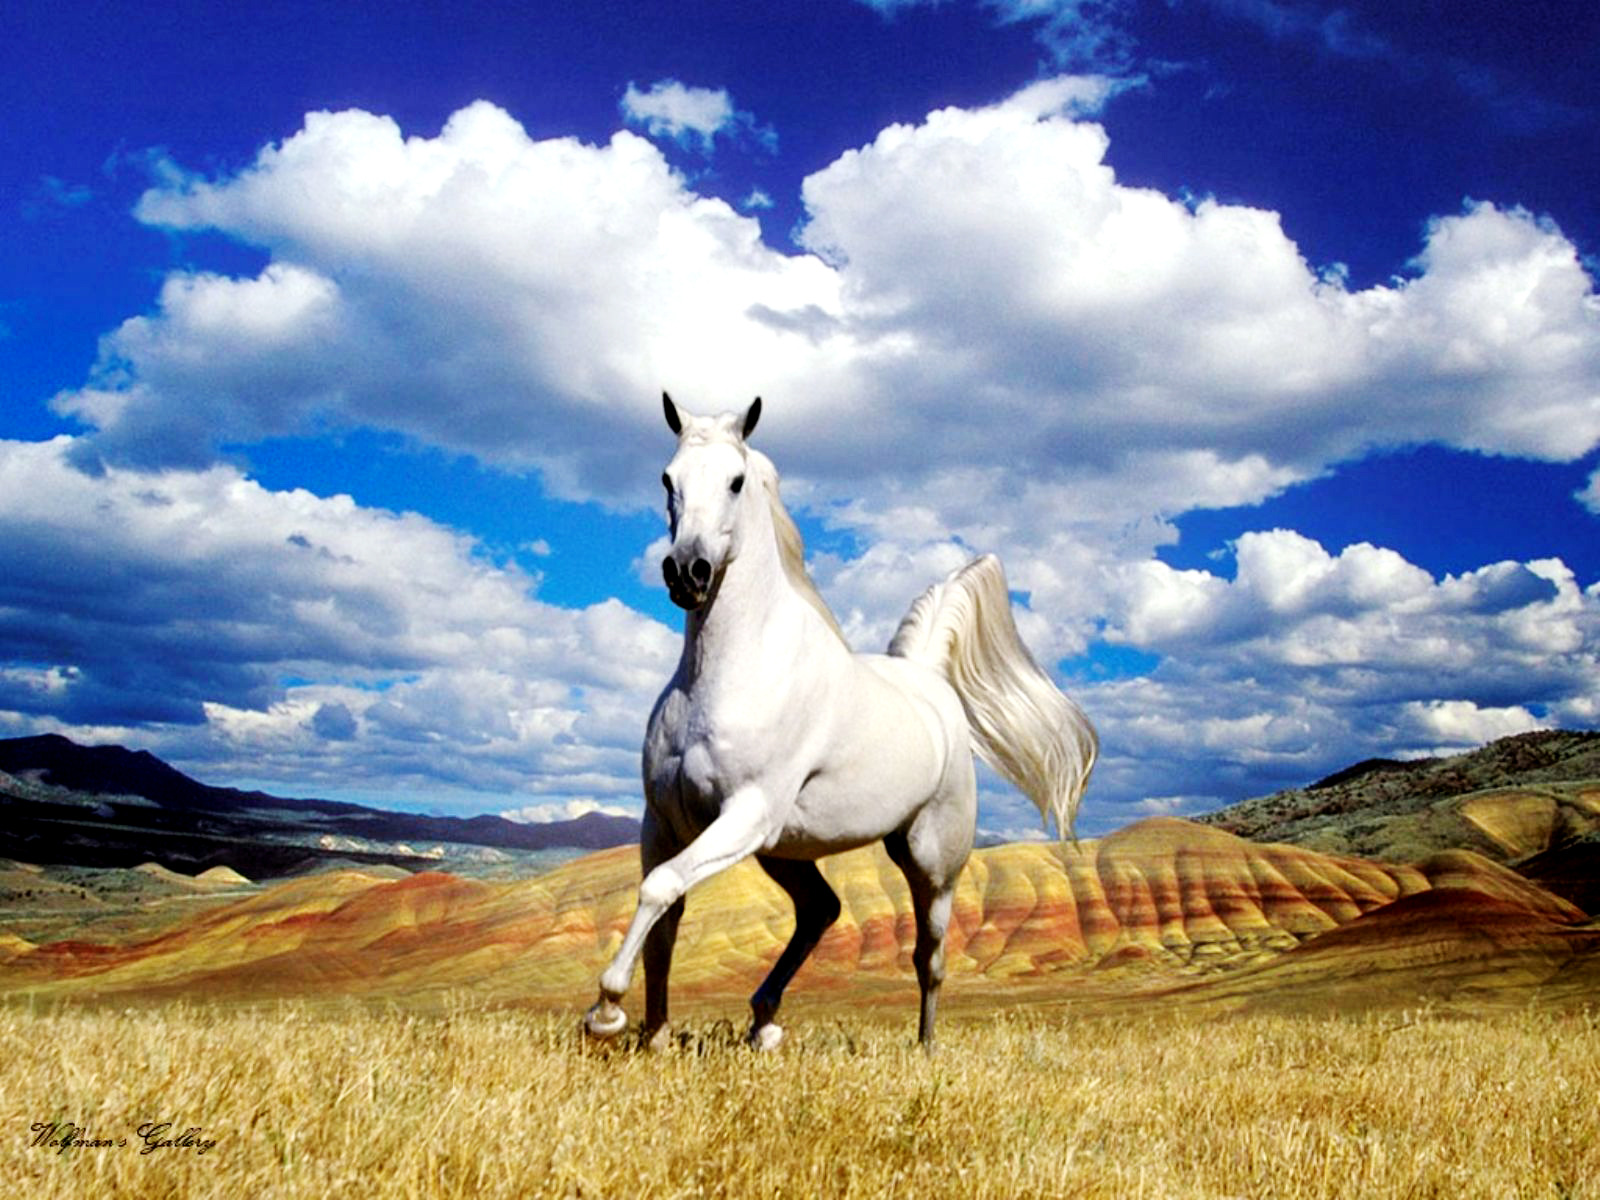 Wonderful   Wallpaper Horse Stunning - horse+wallpapers+hd  Perfect Image Reference_813319.jpg